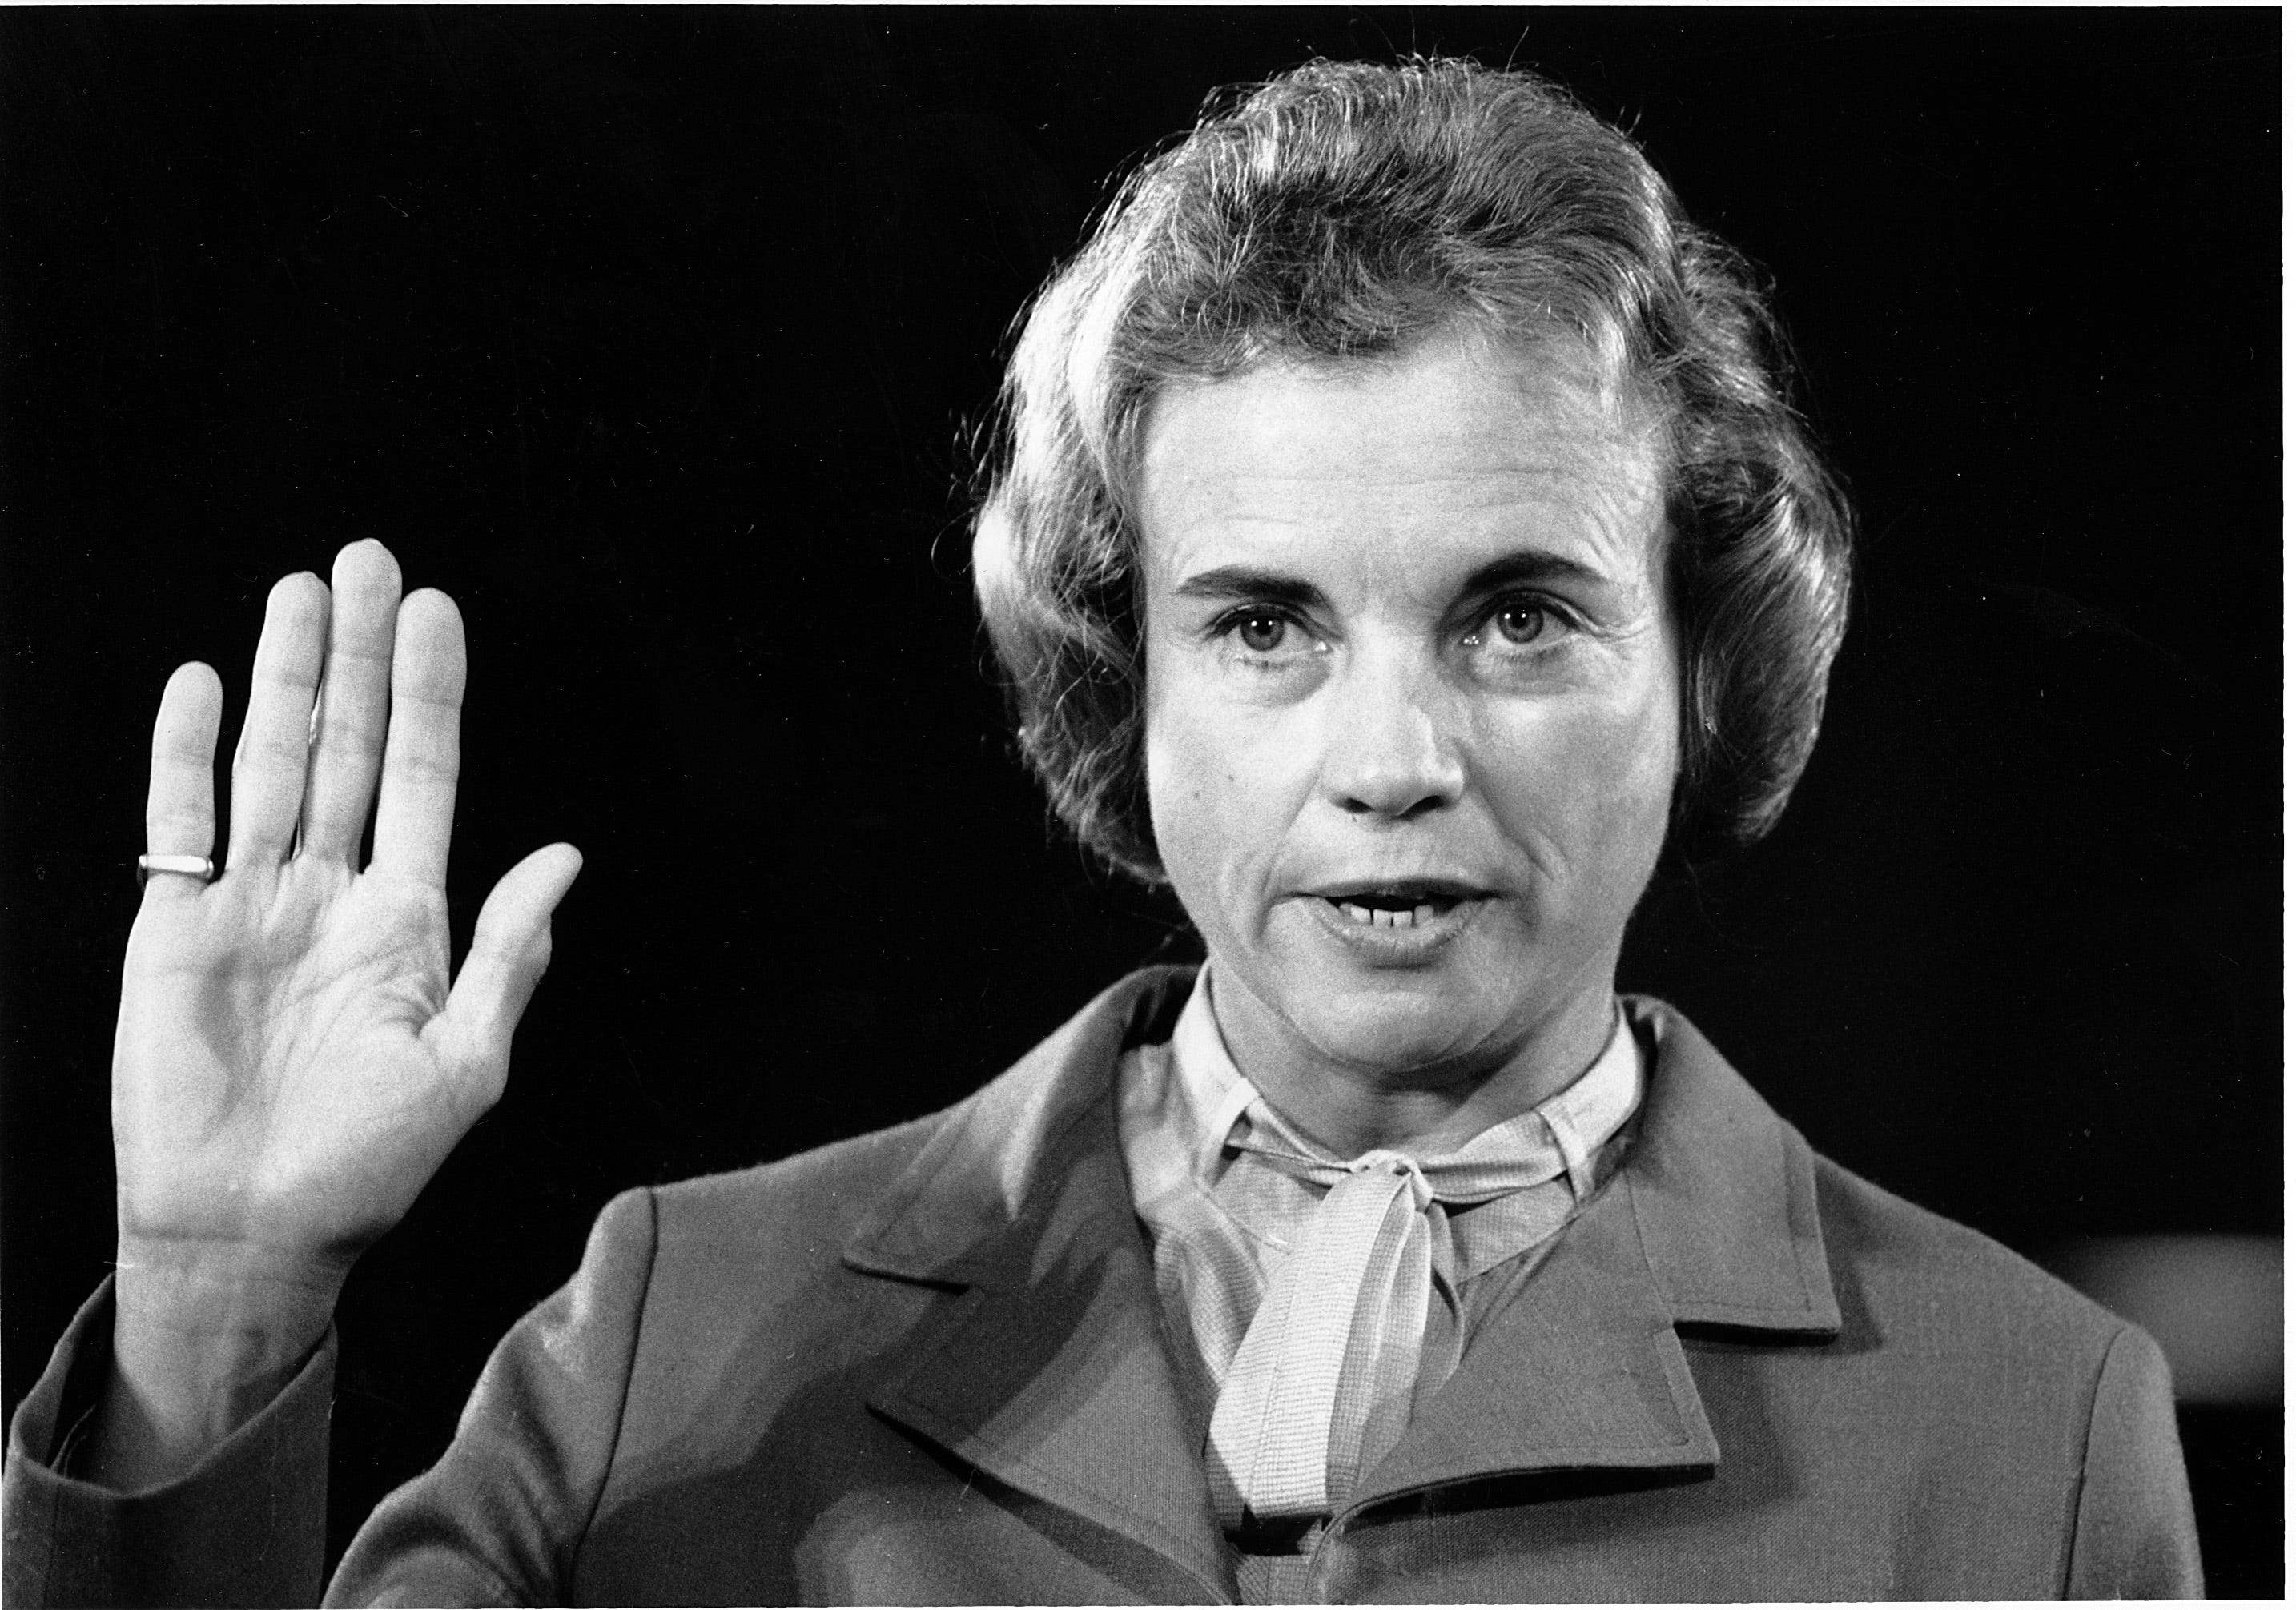 Sandra Day O'Connor: Biography of the first woman on the Supreme Court